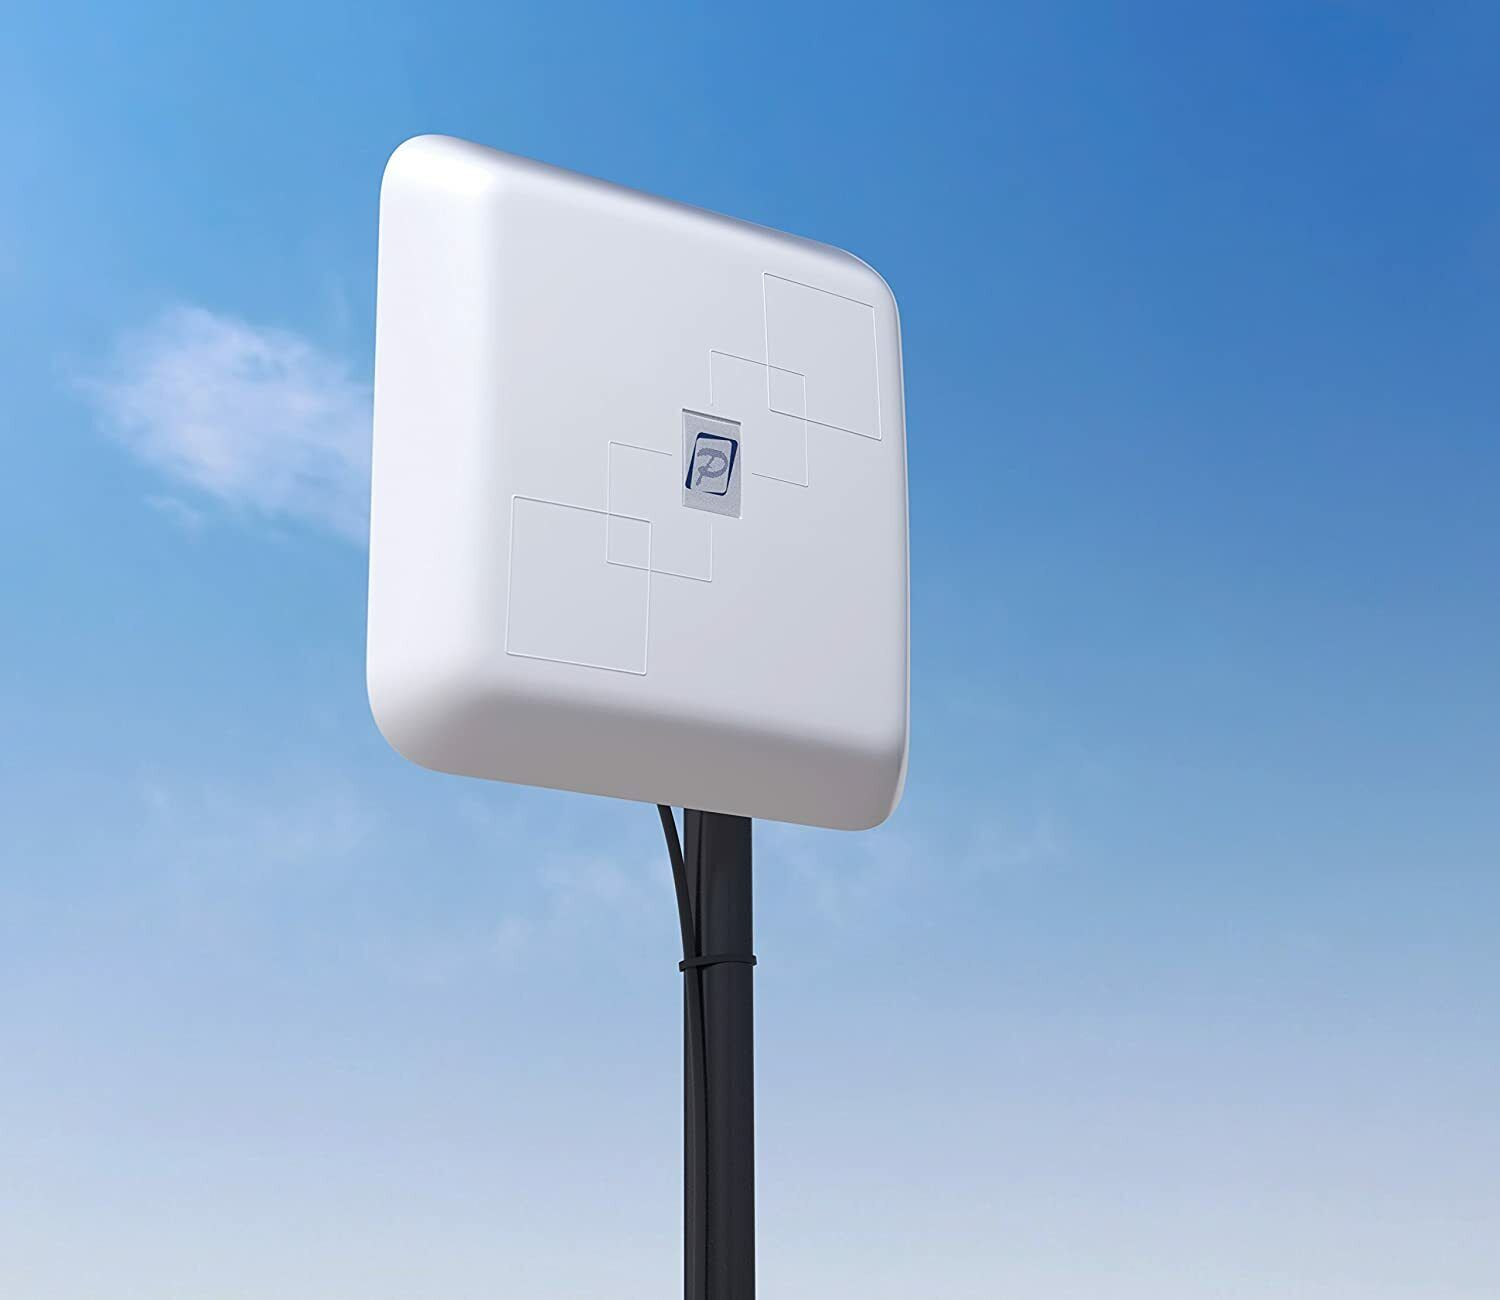 Antenna Outdoor LTE MIMO BAS-2325 Connect Street Direct. Available Now for 12.50